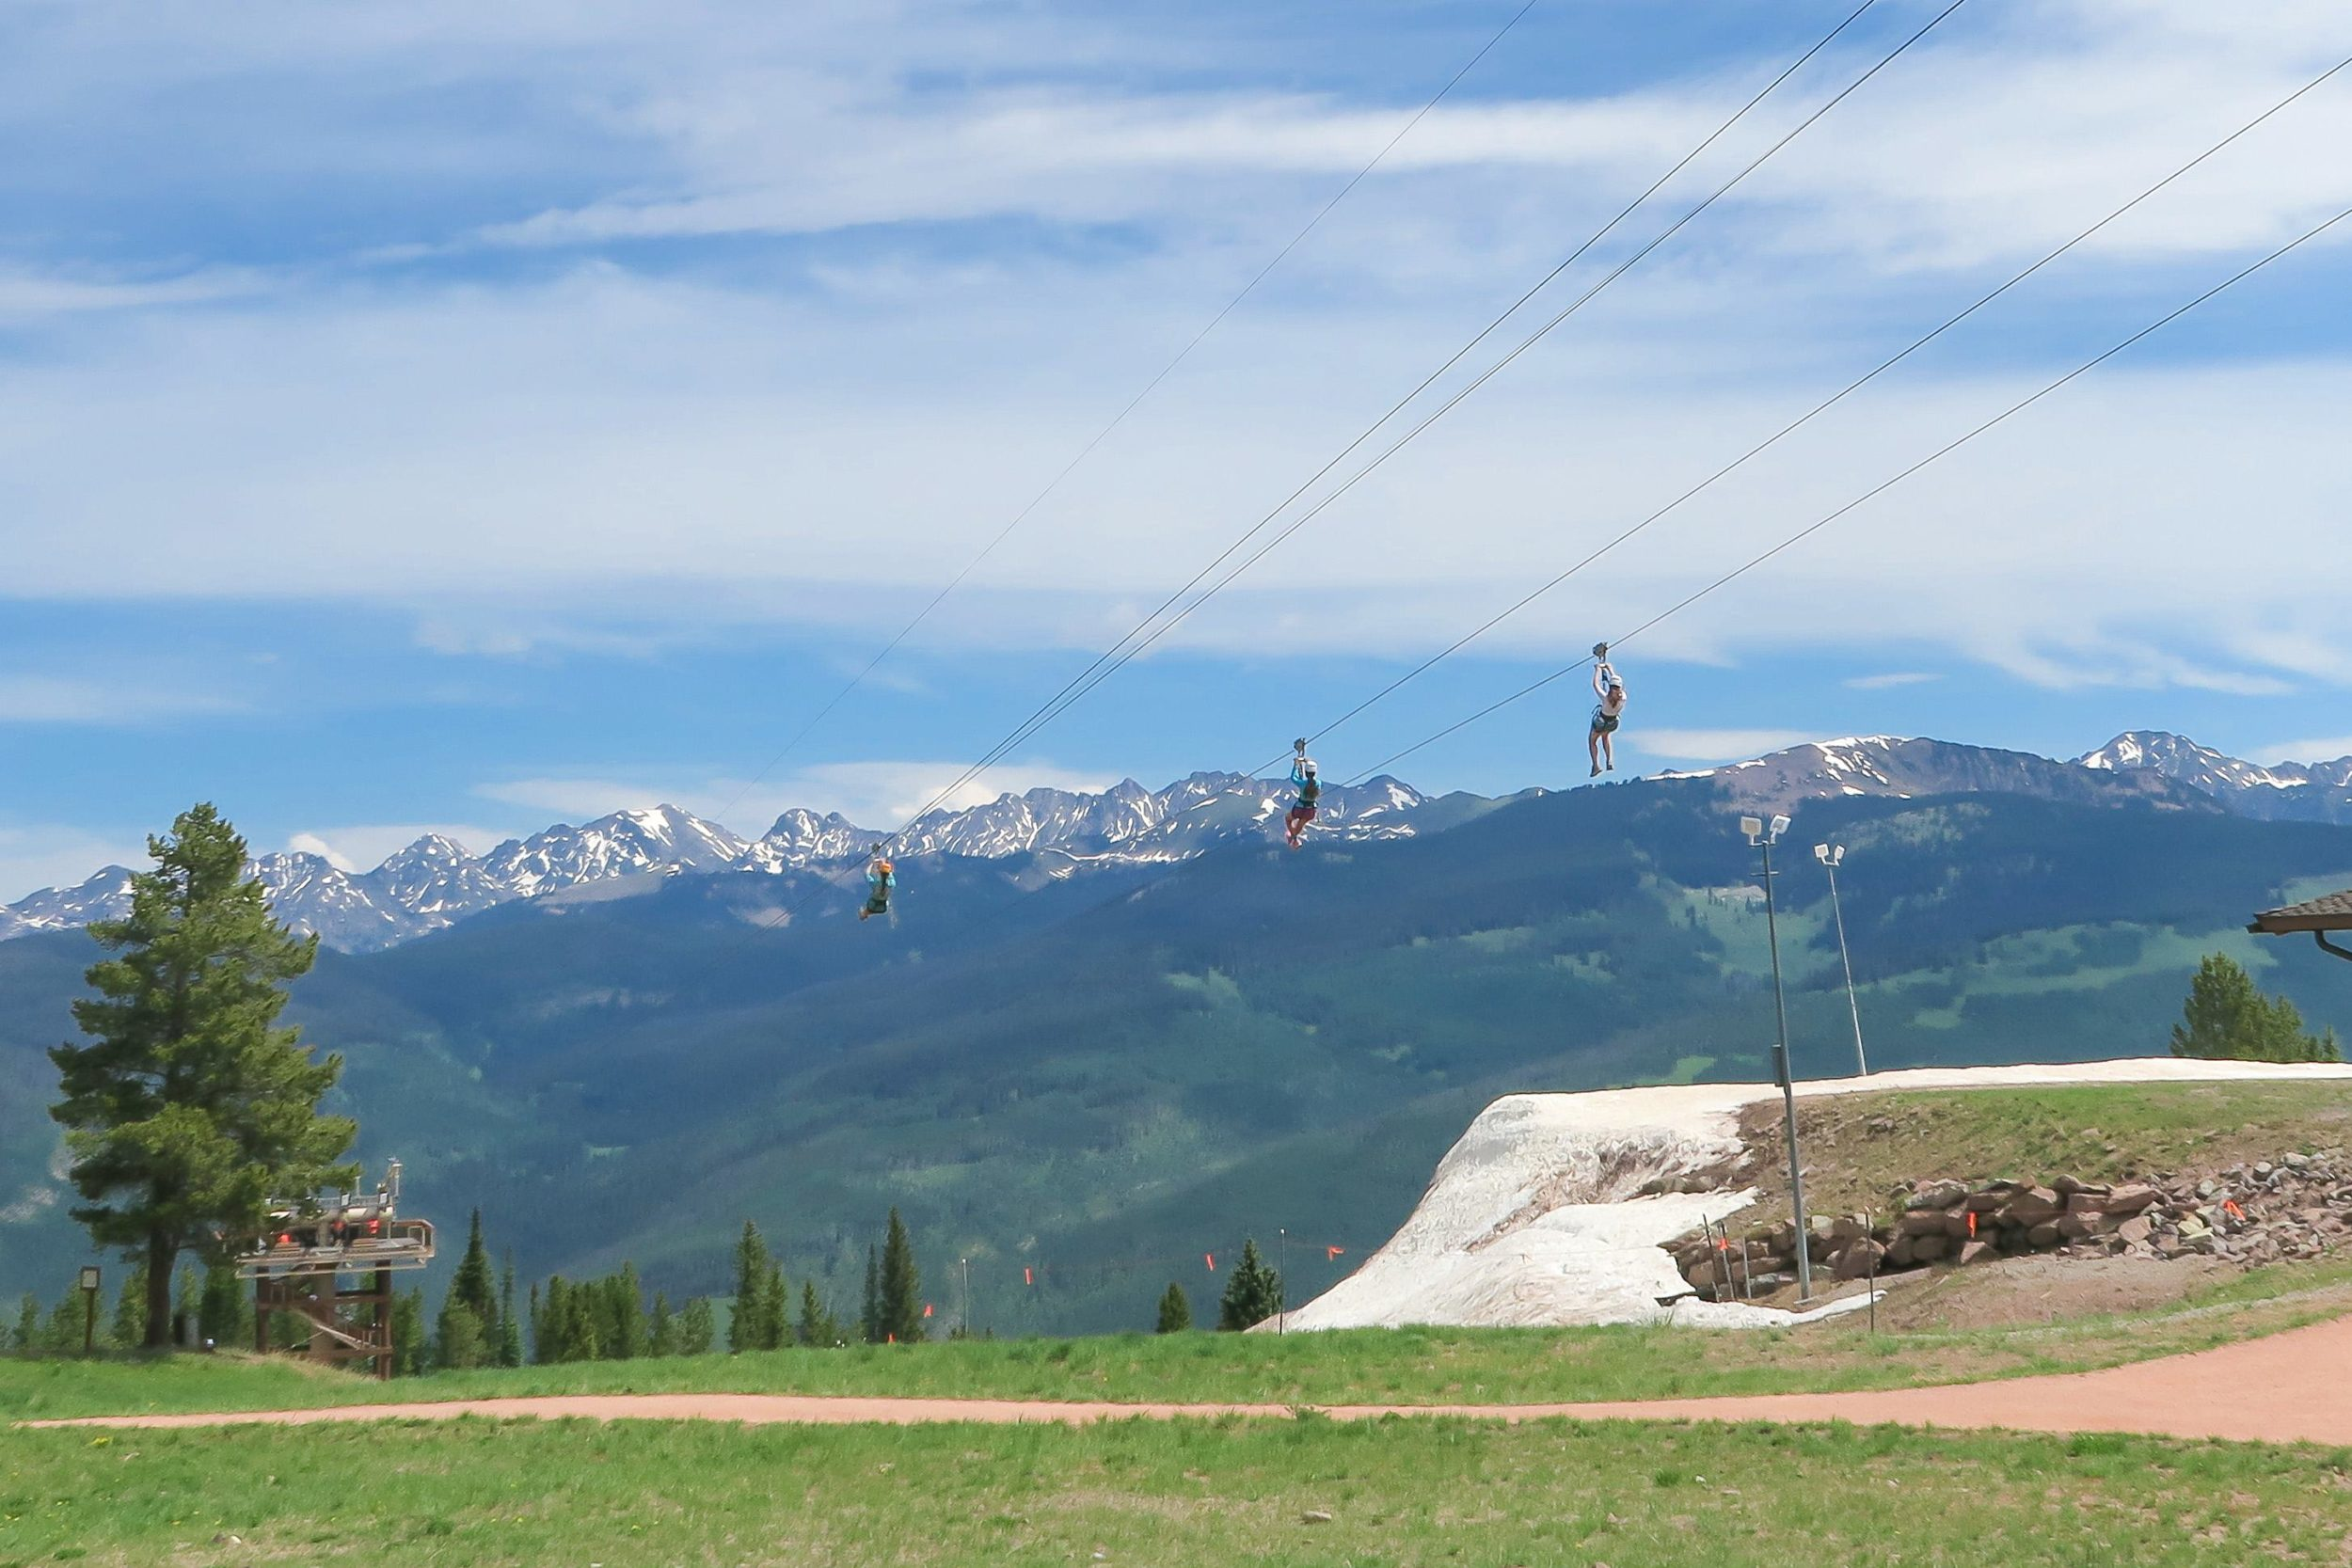 The Zip Line at Epic Discovery on Vail Mountain in Colorado.